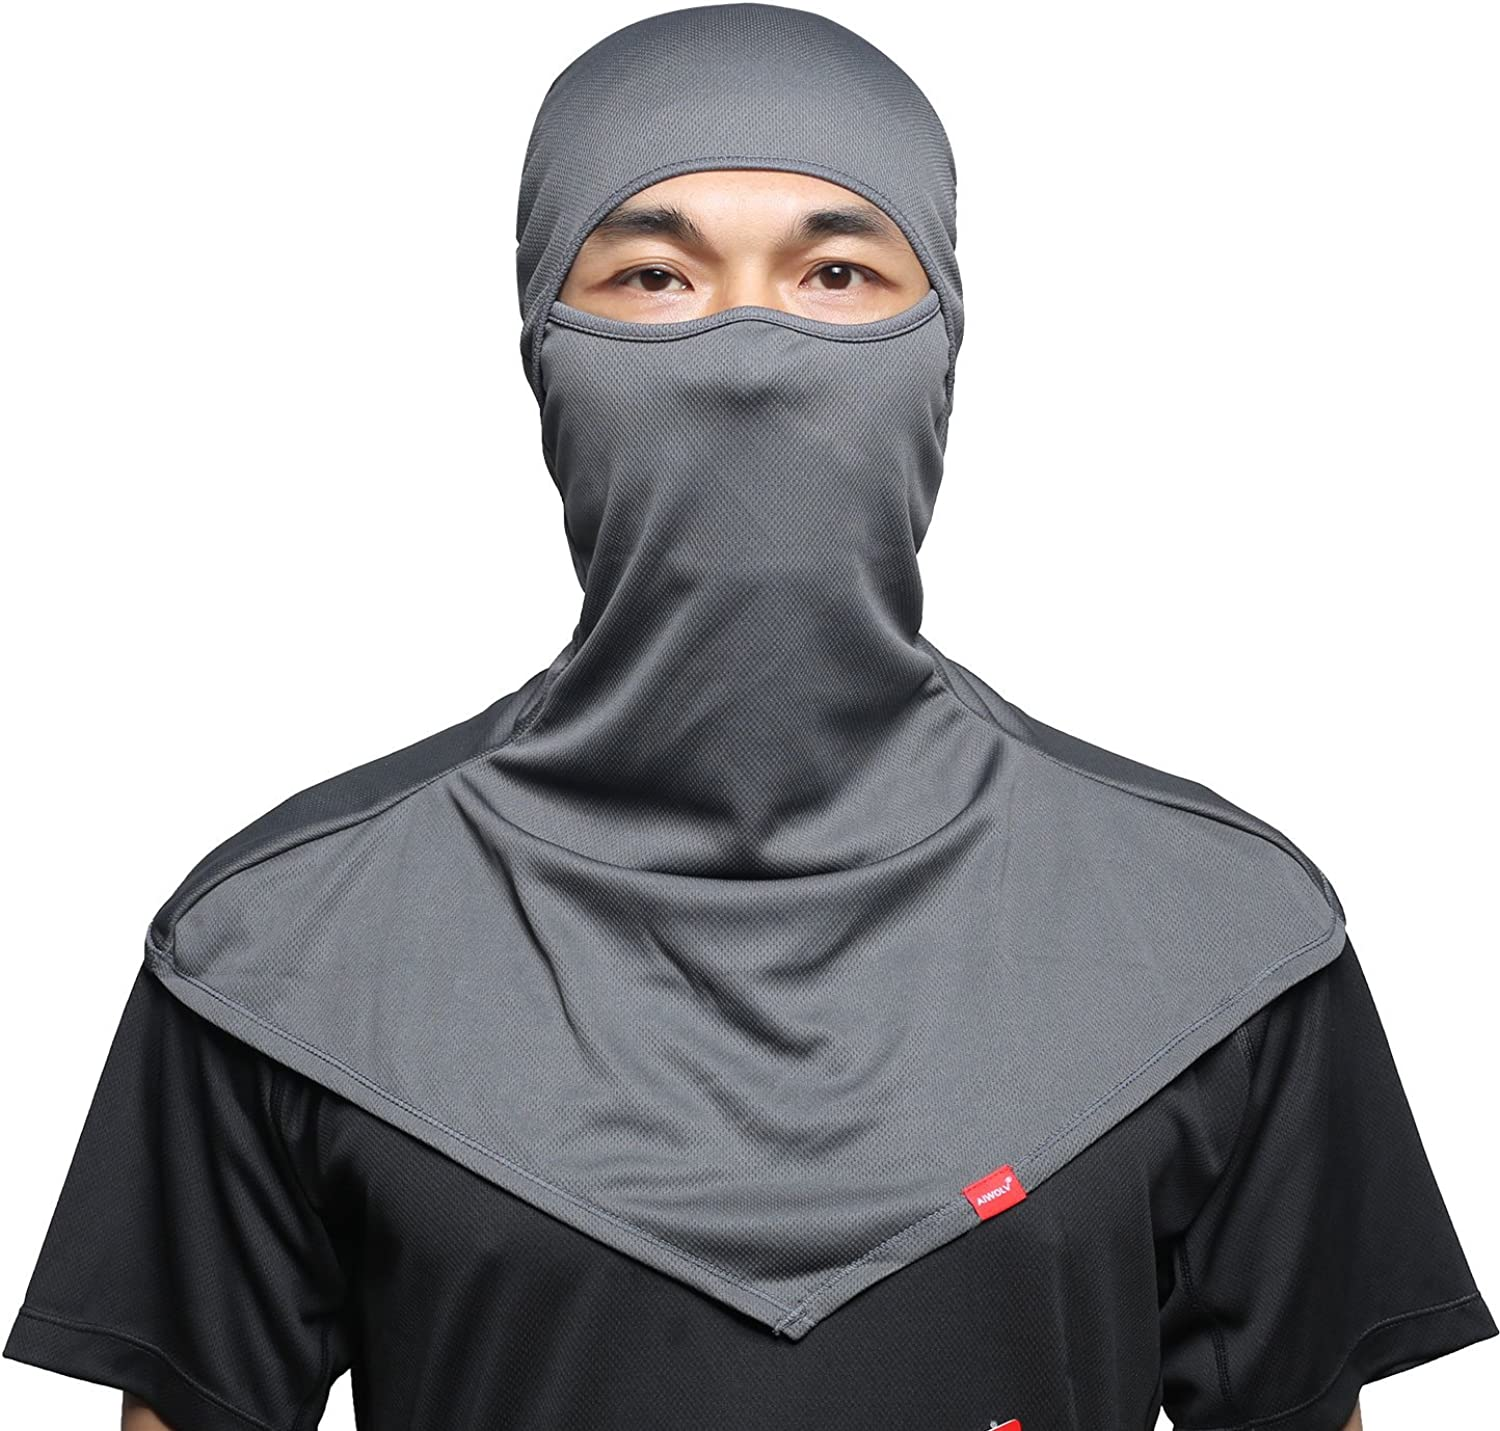 Balaclava Face Mask for Sun Protection Breathable Long Neck Covers for Men